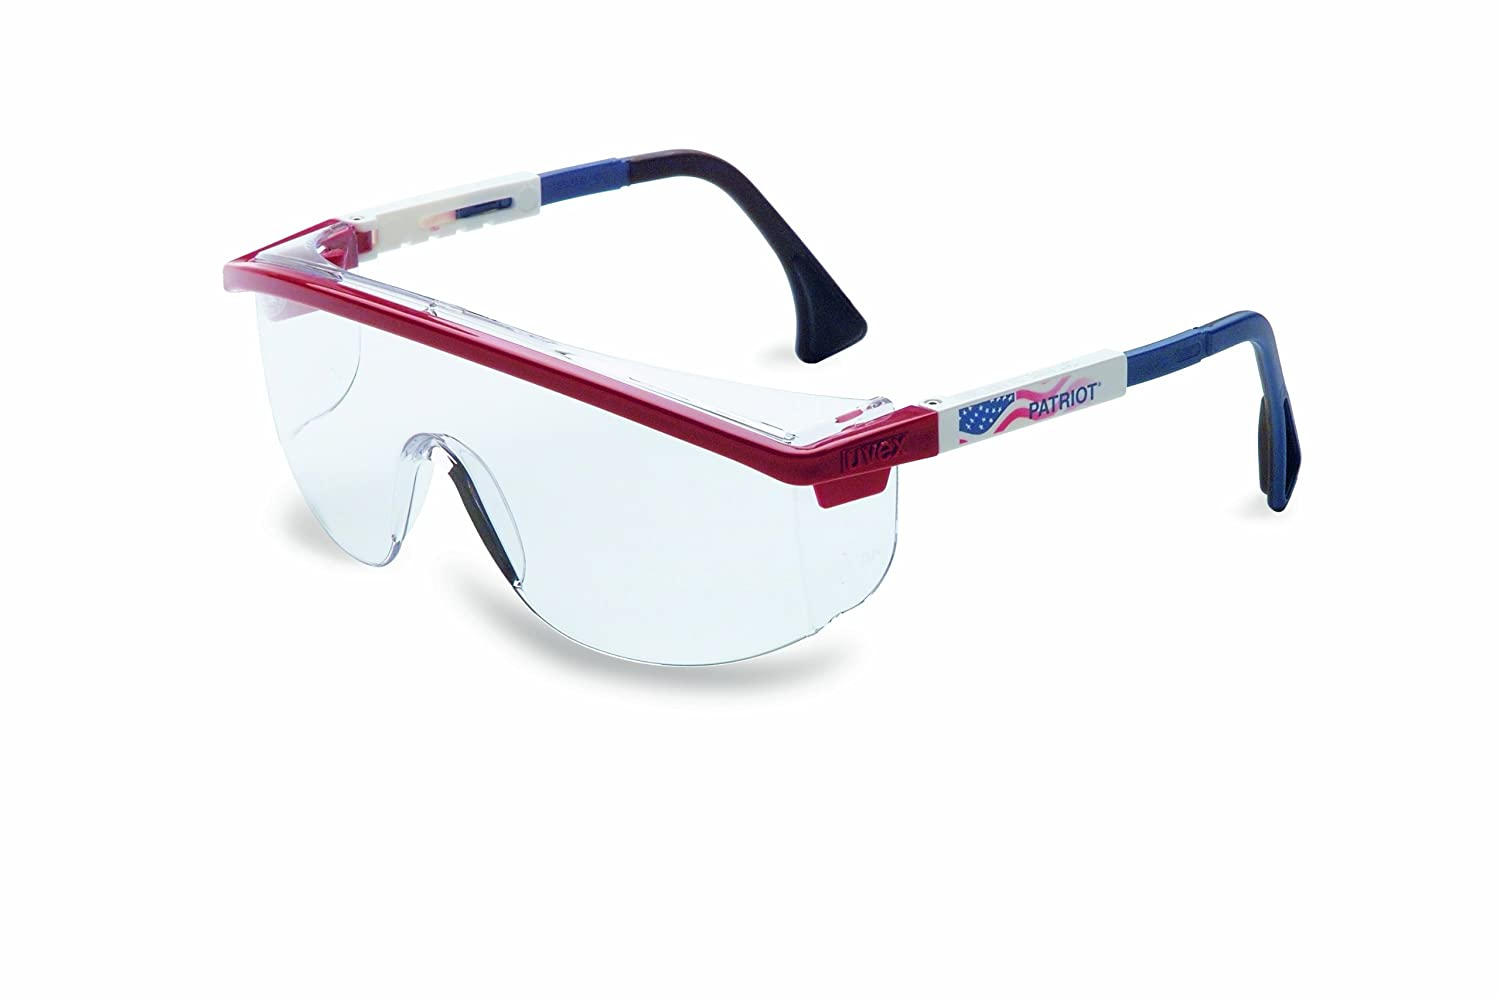 UVEX by Honeywell 763-S1169C Astrospec Series 3000 Safety Eyewear, Patriot RWB Frame, Clear Lens, Uvextreme Anti-fog Coating, Duoflex Temples